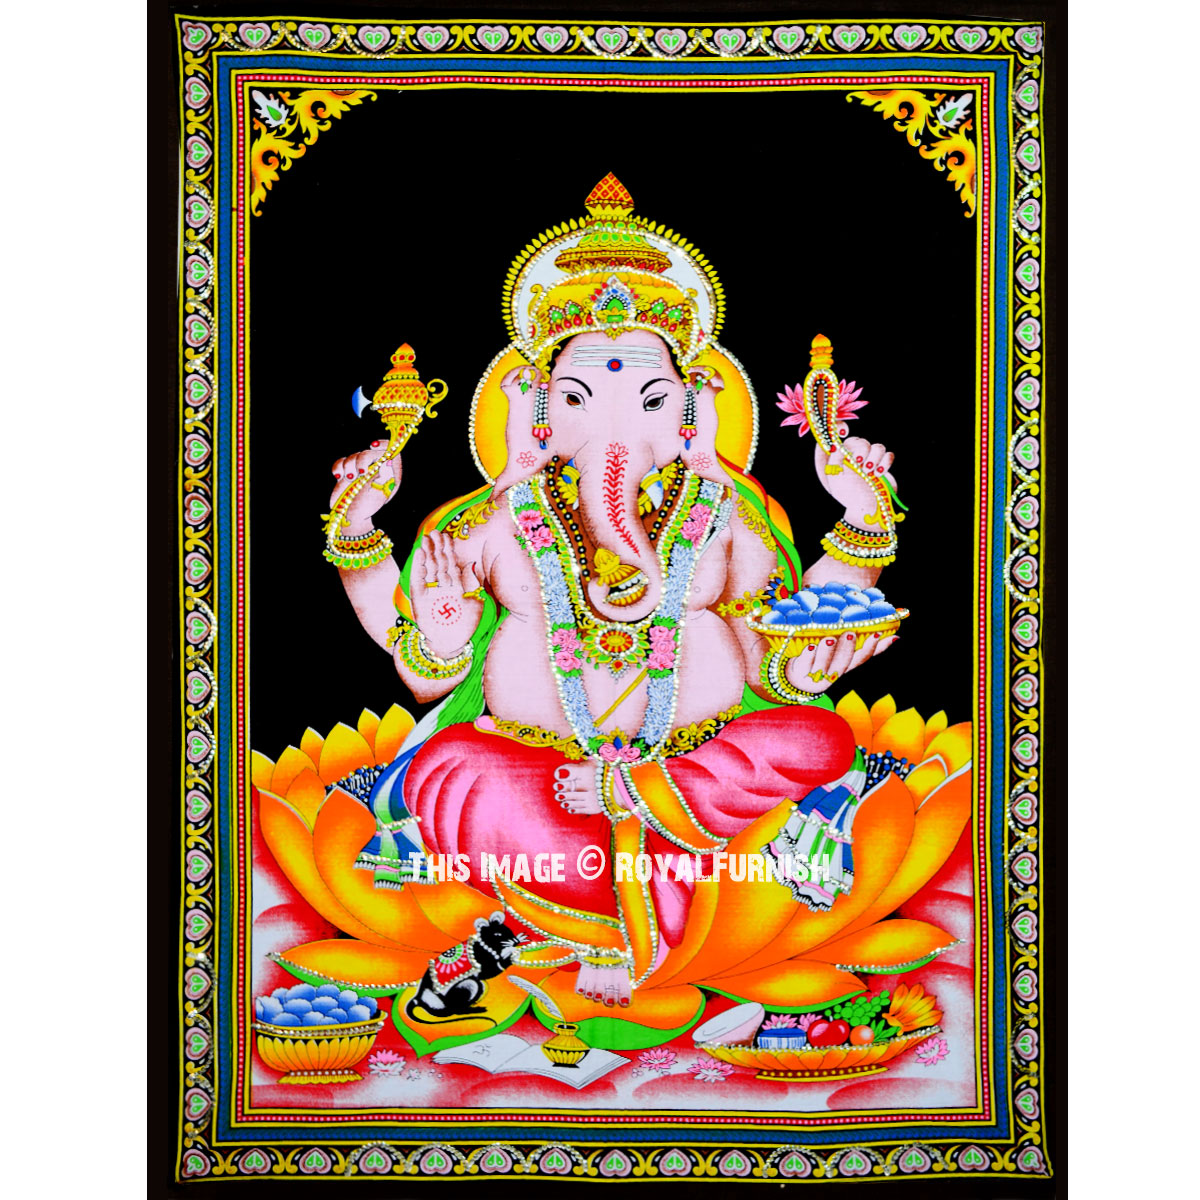 Hindu God Ganesha Cotton Fabric Cloth Poster Tapestry